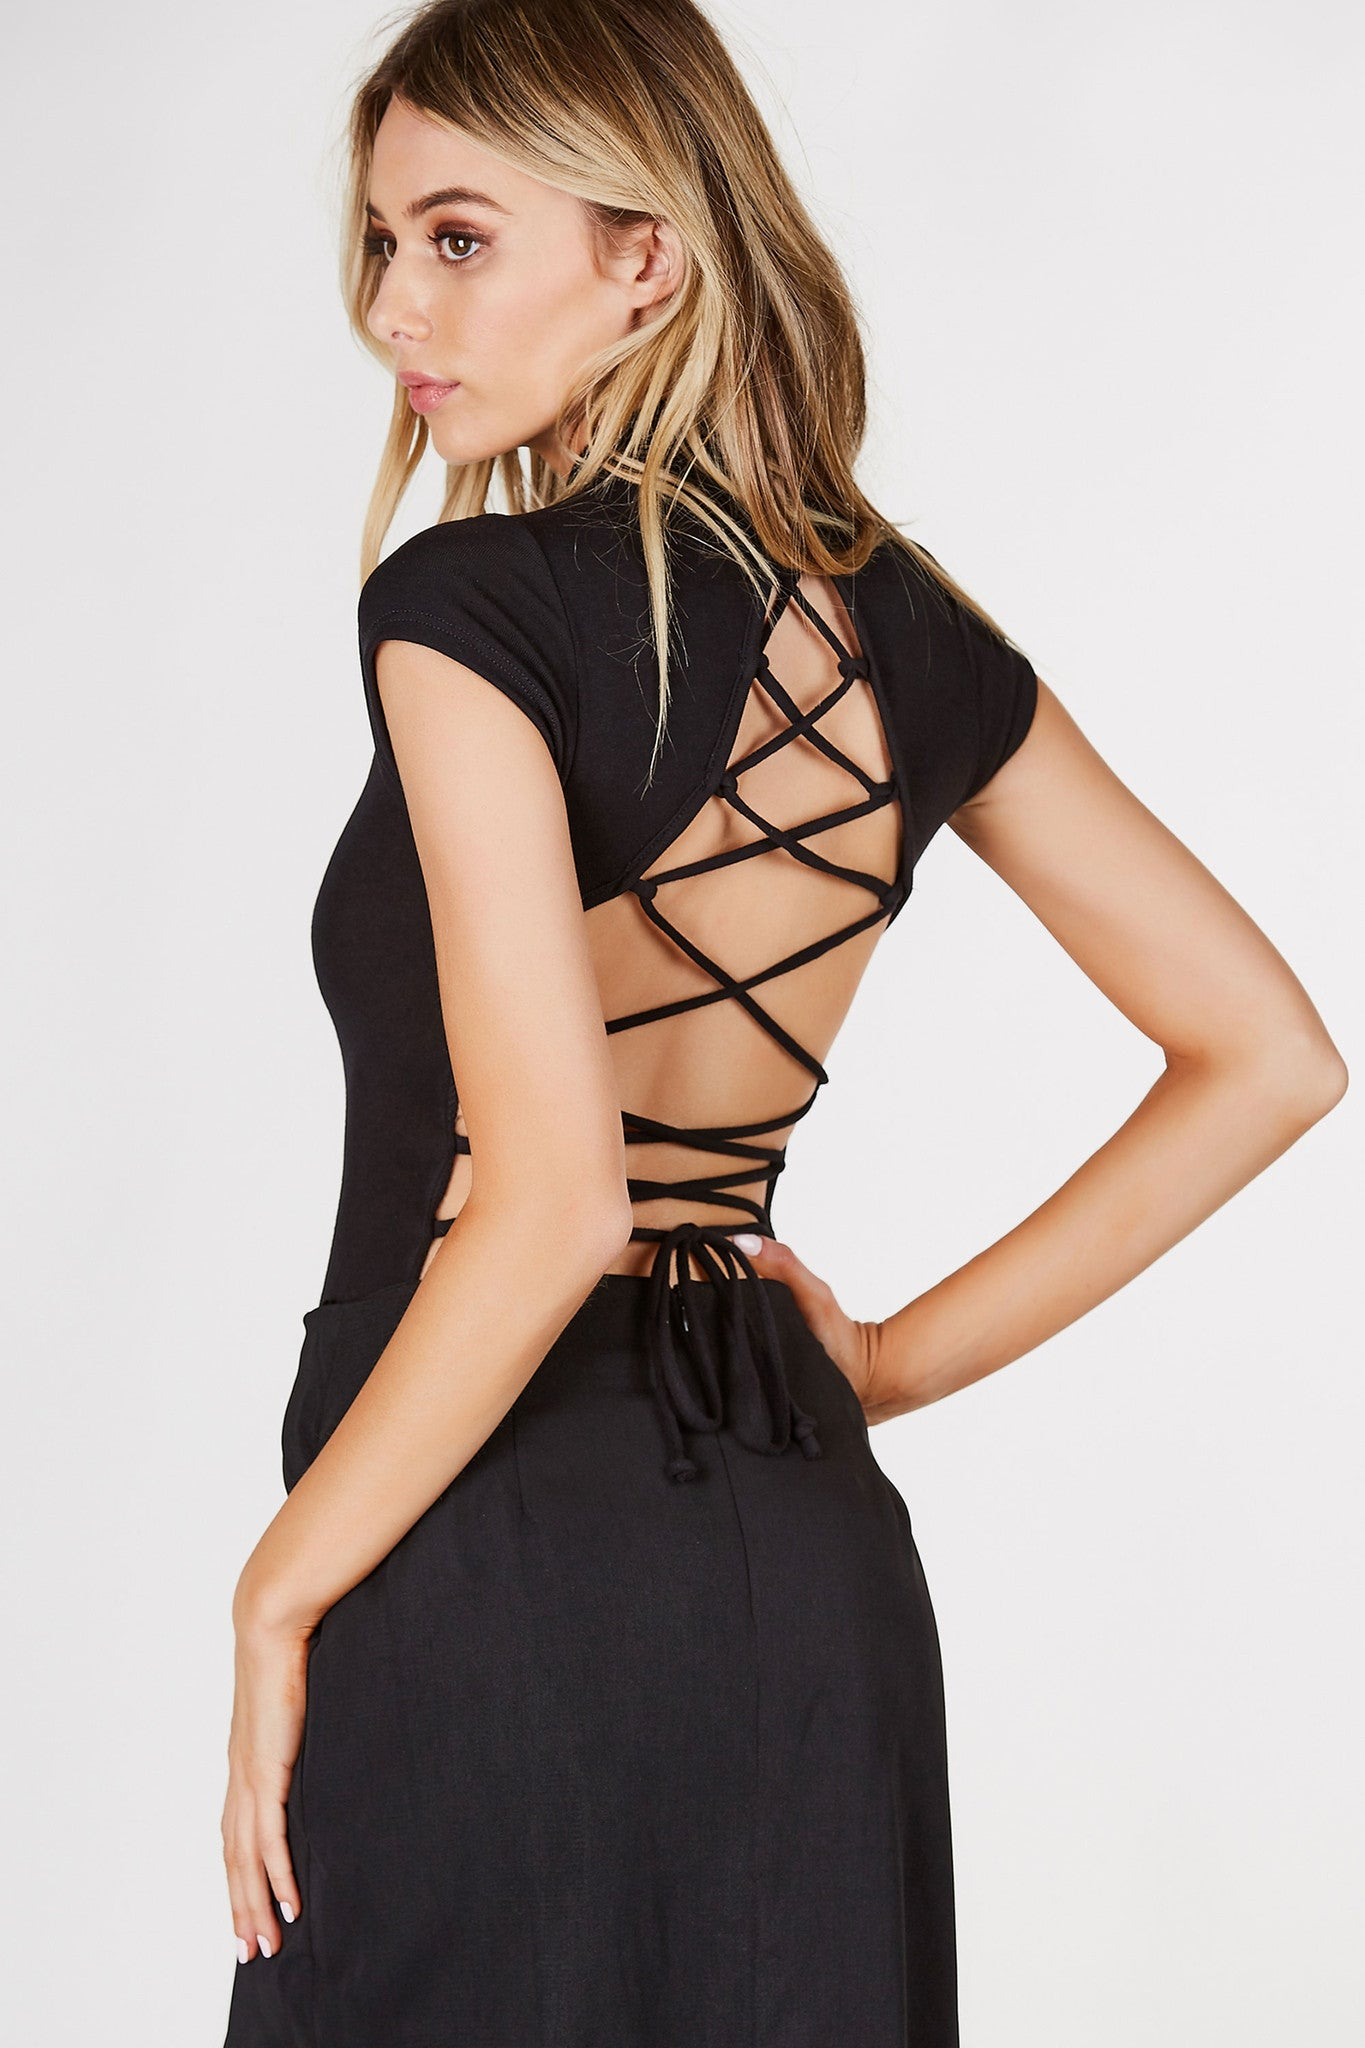 Mock neck bodysuit with cap sleeves. Open back with sexy lace up design. Cheeky cut with snap button closure.